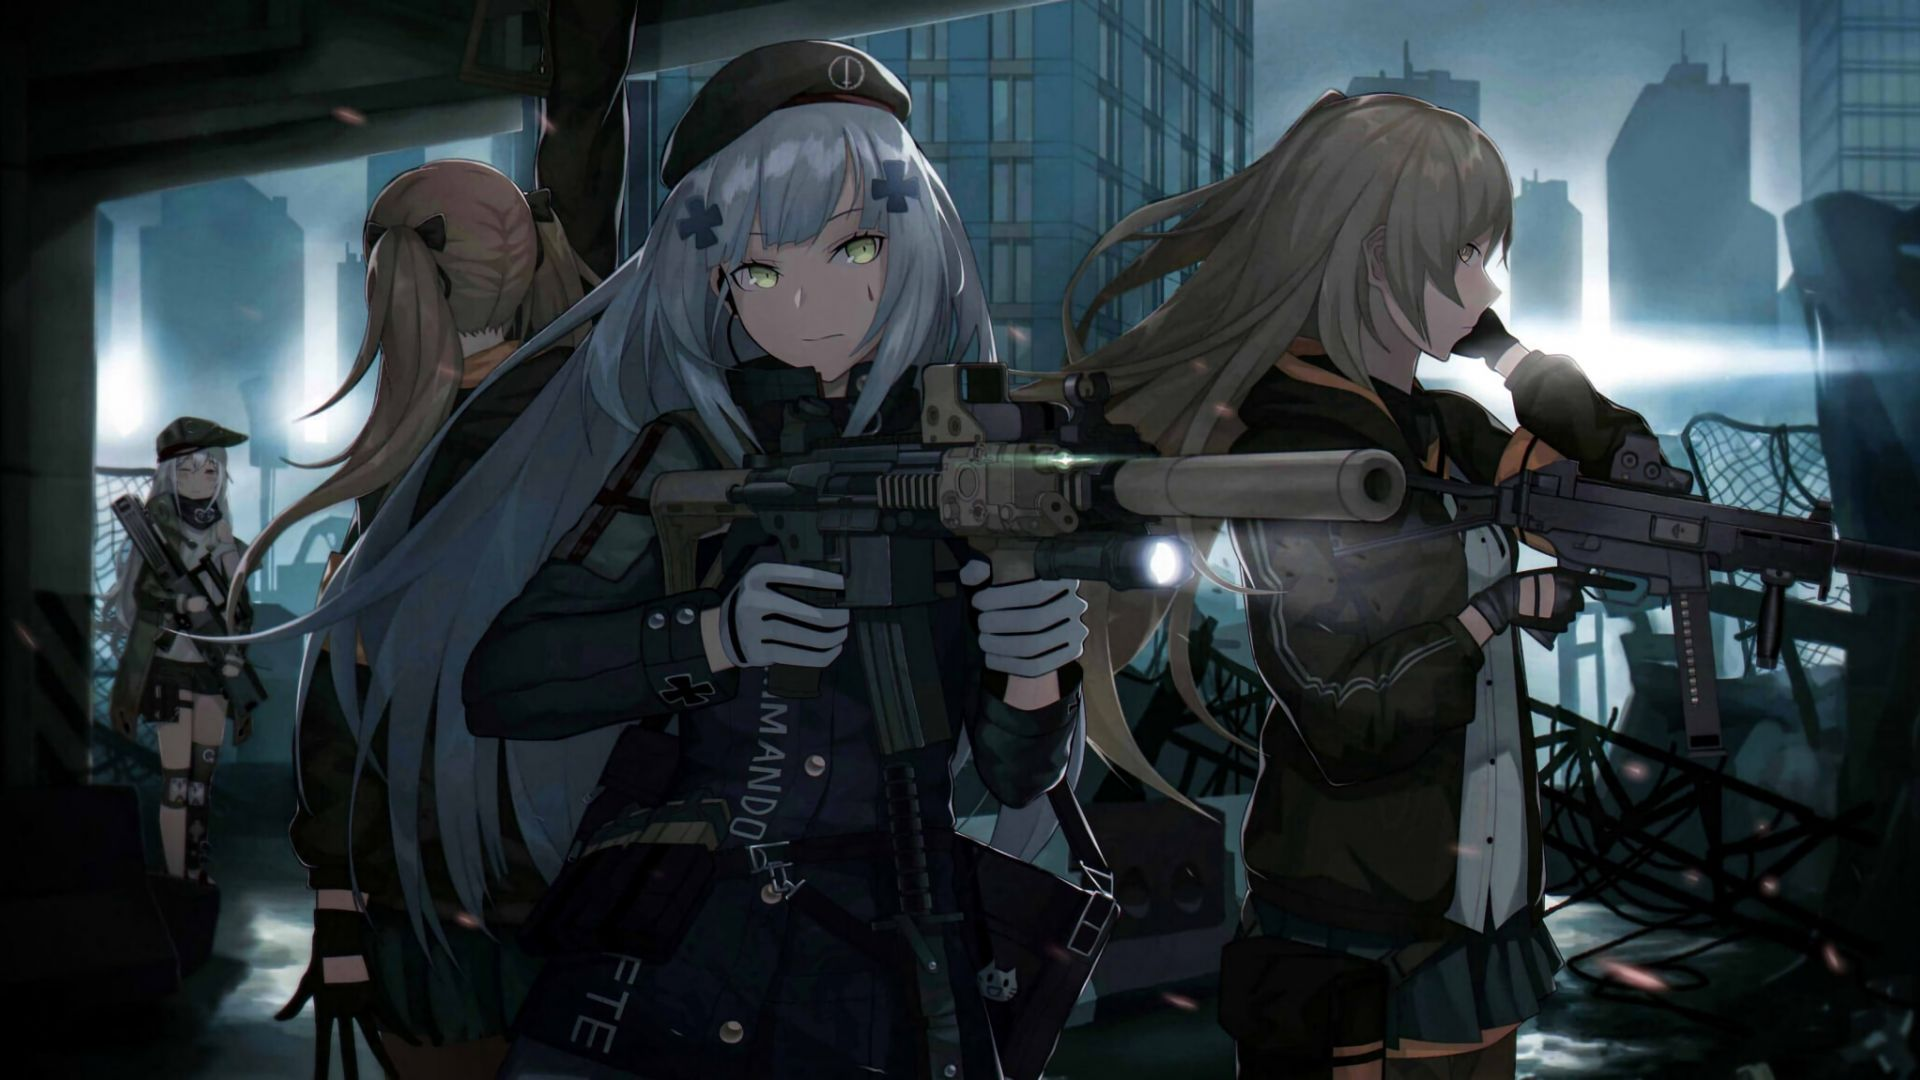 Superhero Hd Wallpapers Iphone Desktop Wallpaper Girls Frontline Anime Girls With Gun